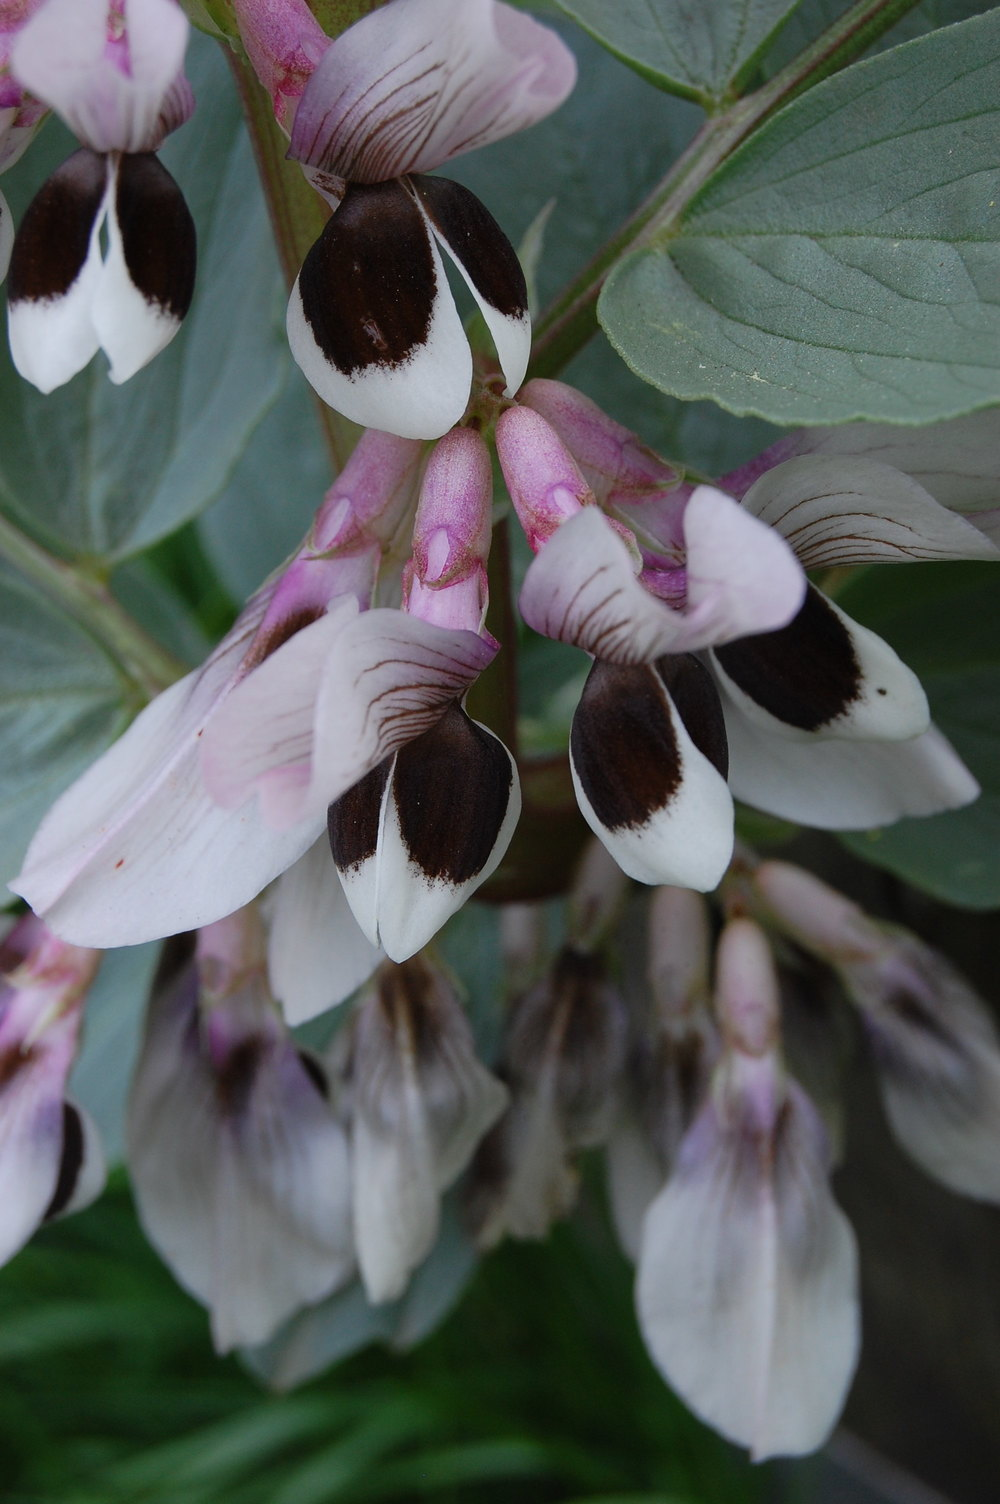 Fava bean flowers, photo by Megan Jamieson